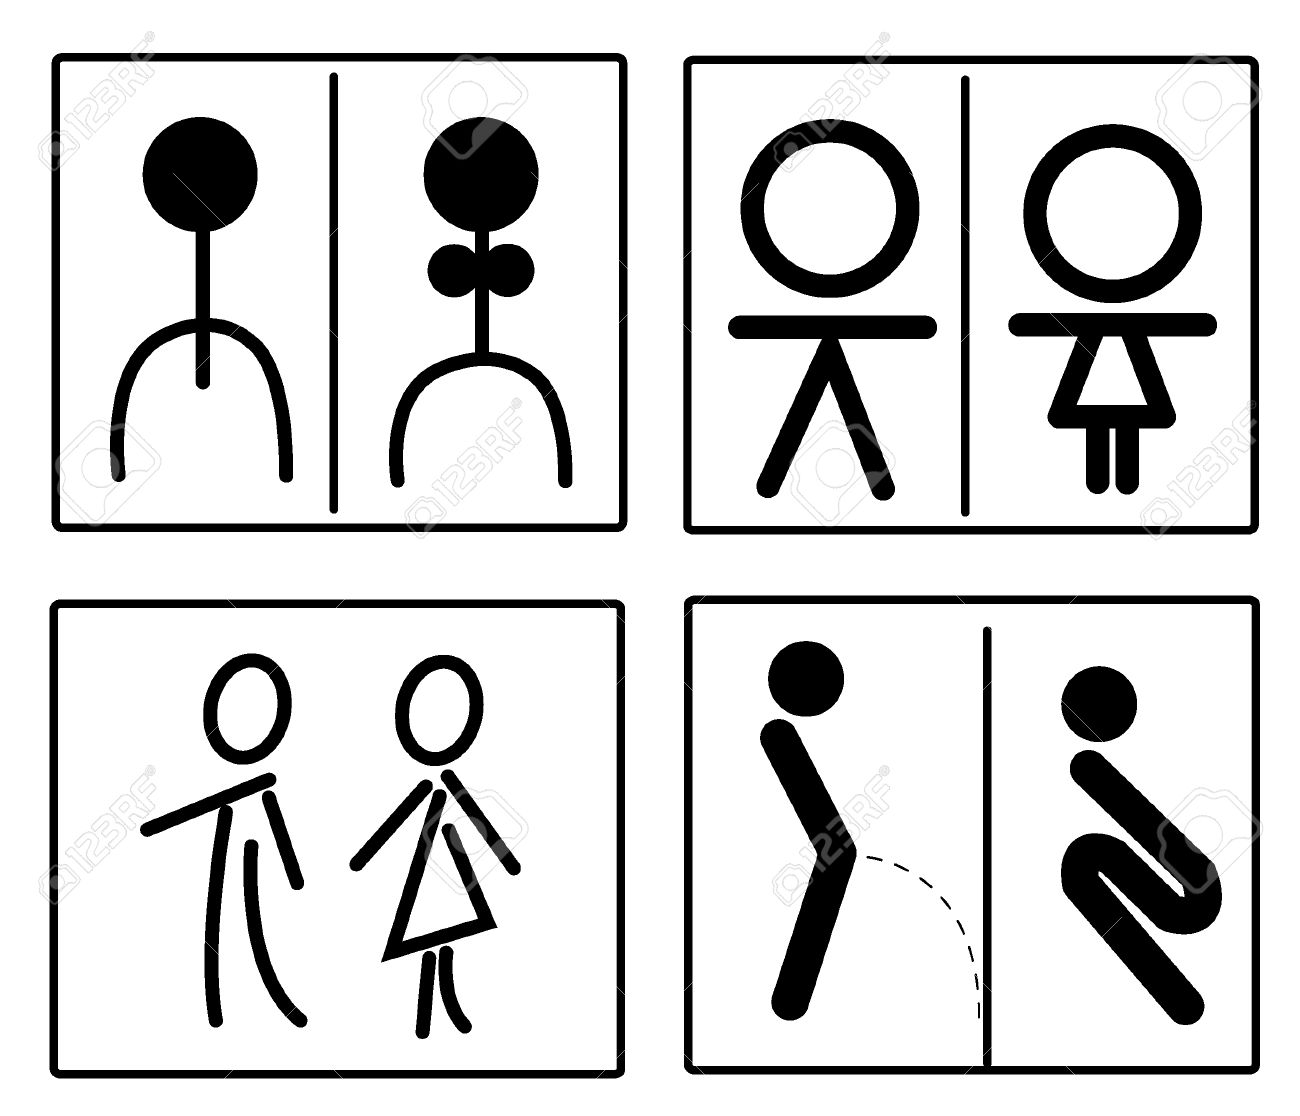 Bathroom Sign Male Vector toilet sign set royalty free cliparts, vectors, and stock